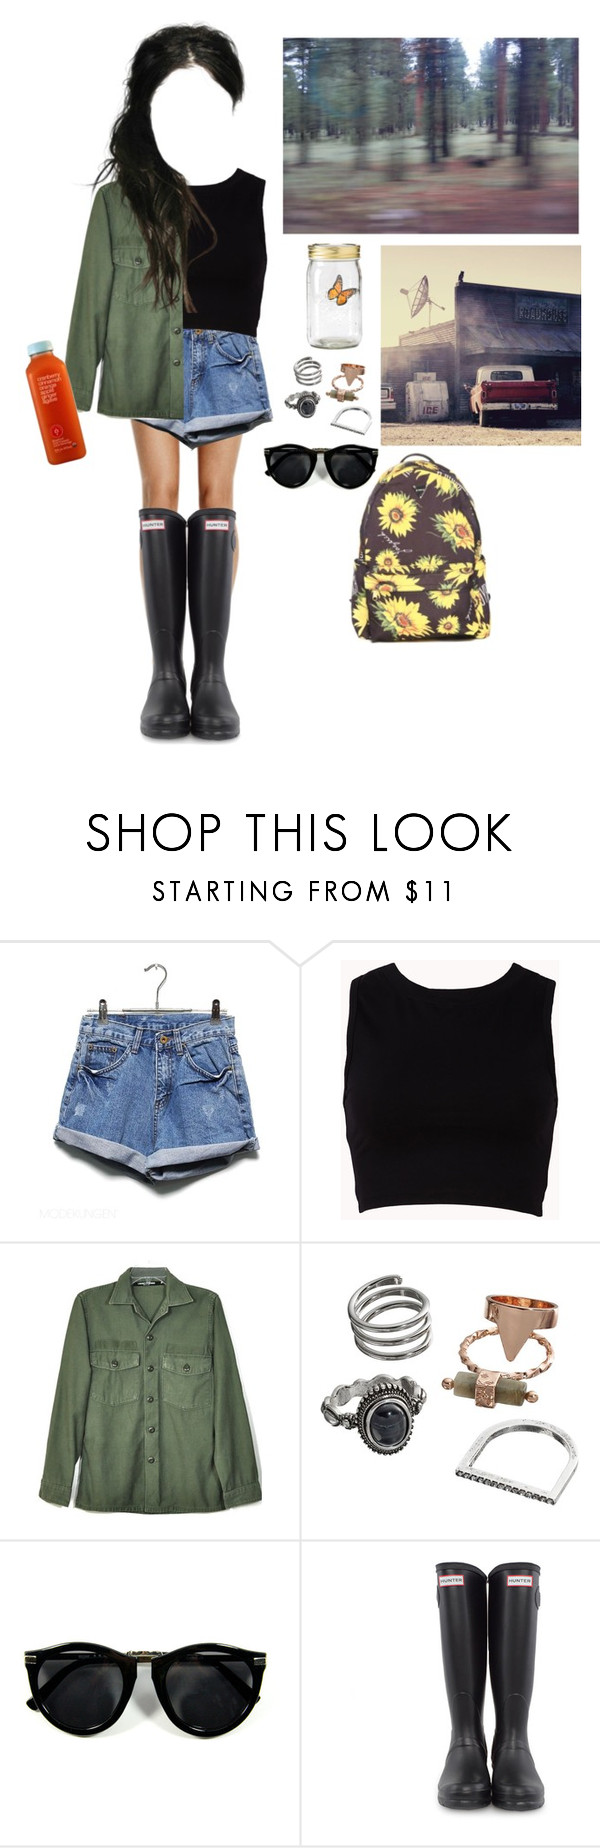 """""""hiking"""" by gypsysoulqueenofboho ❤ liked on Polyvore featuring Forever 21, Obesity and Speed, Mudd, Hunter, ootd, polyvorefashion, 60secondstyle and PolyvoreMostStylish"""